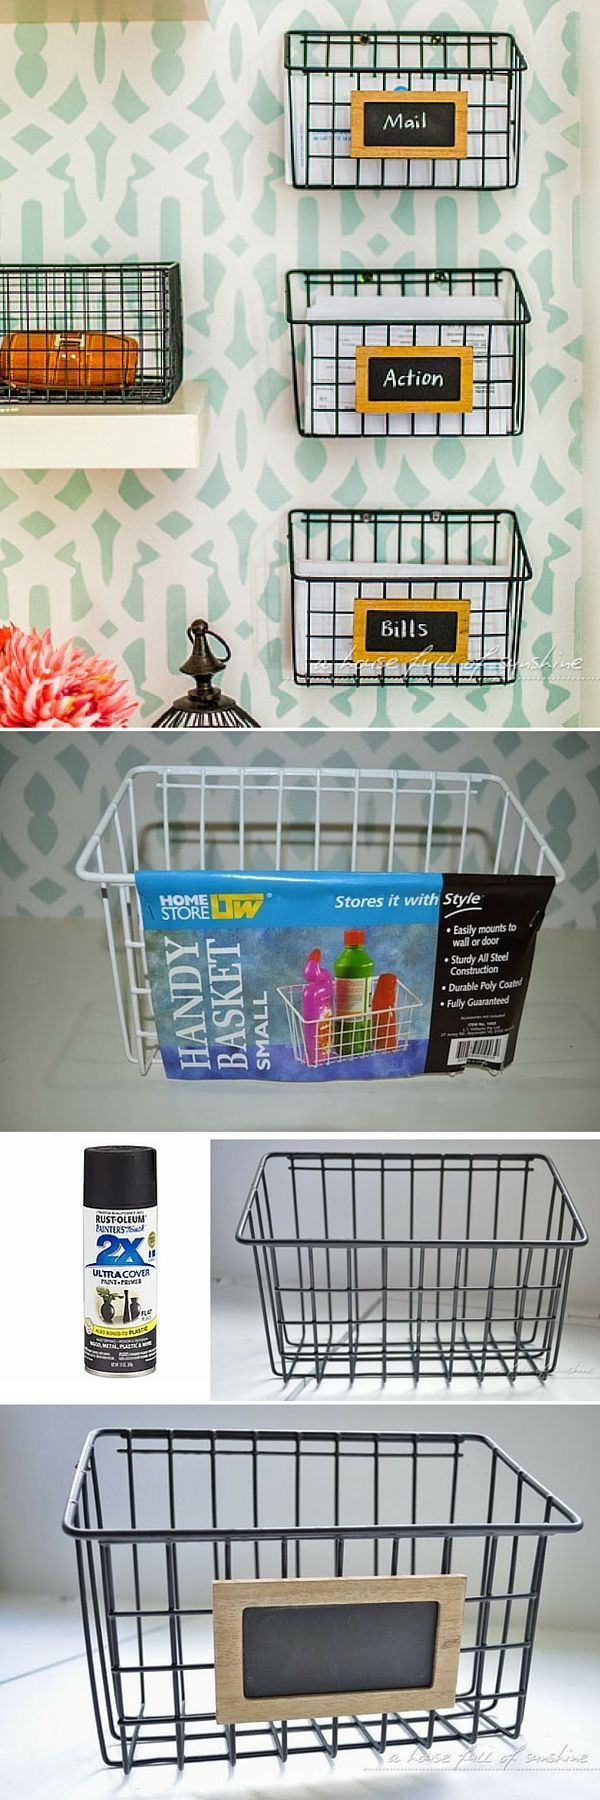 25 best Hanging mail organizer ideas on Pinterest Mail